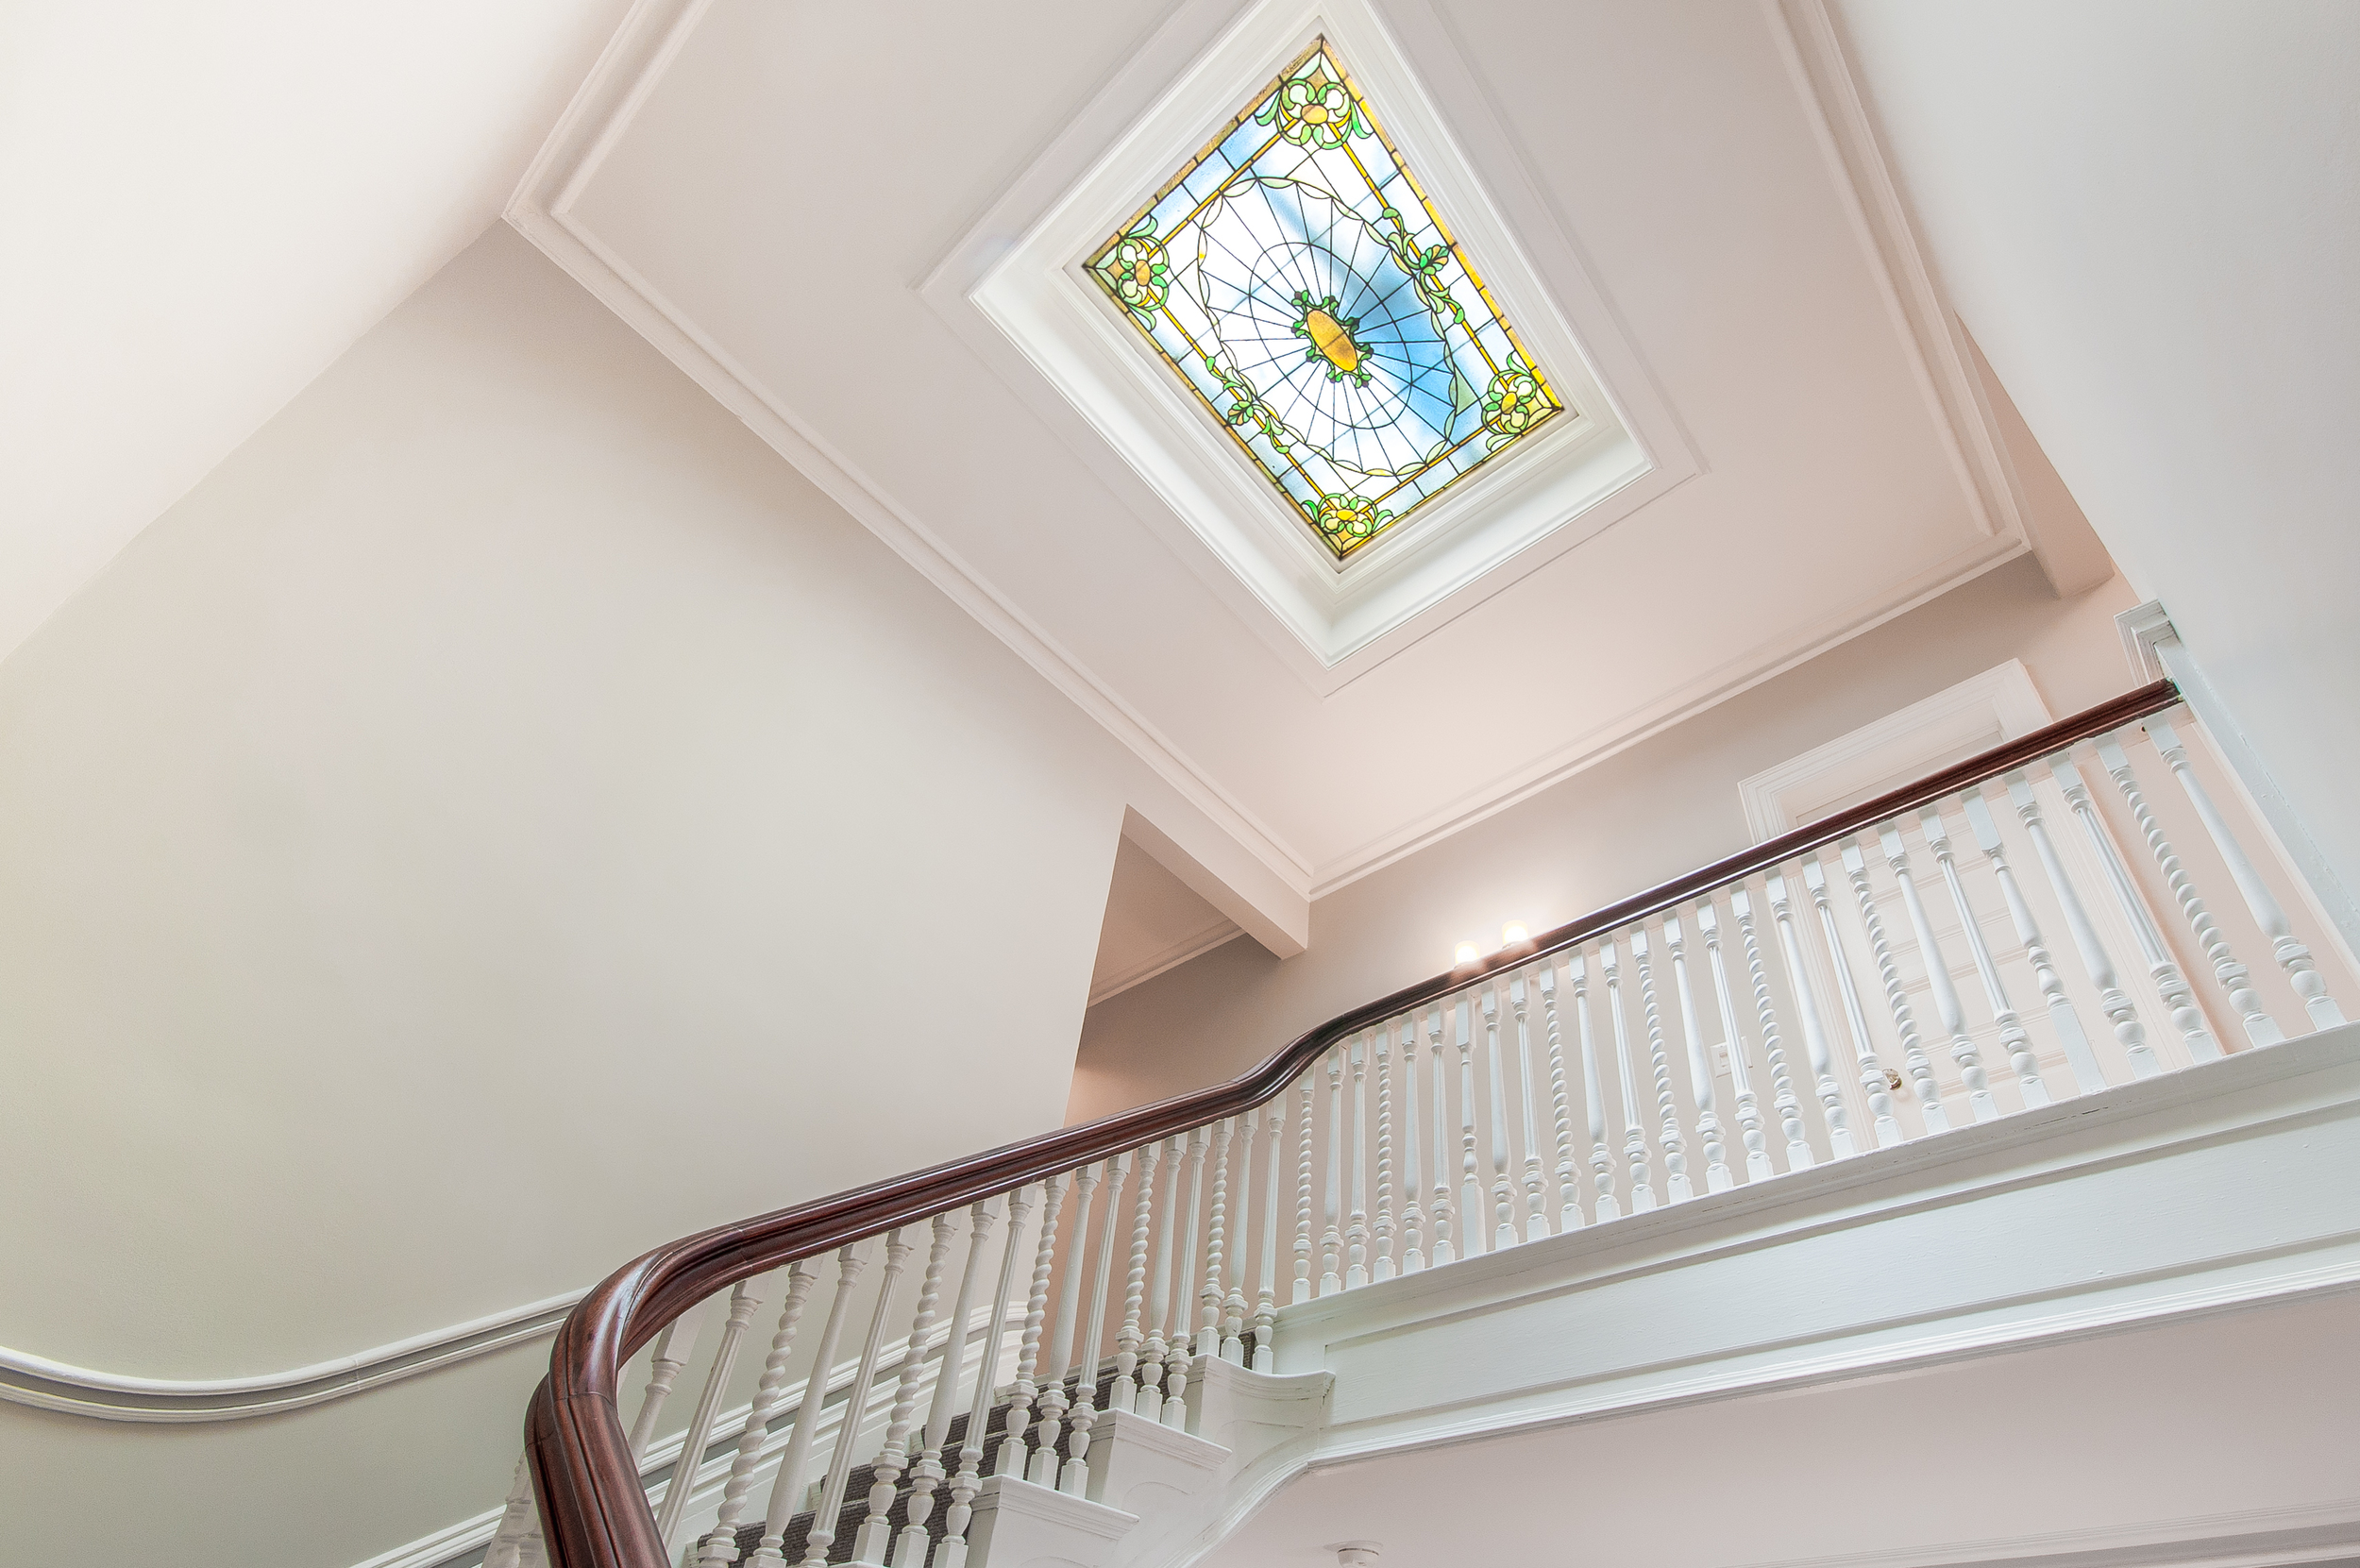 townhouse UWS staircase detail-1.jpg